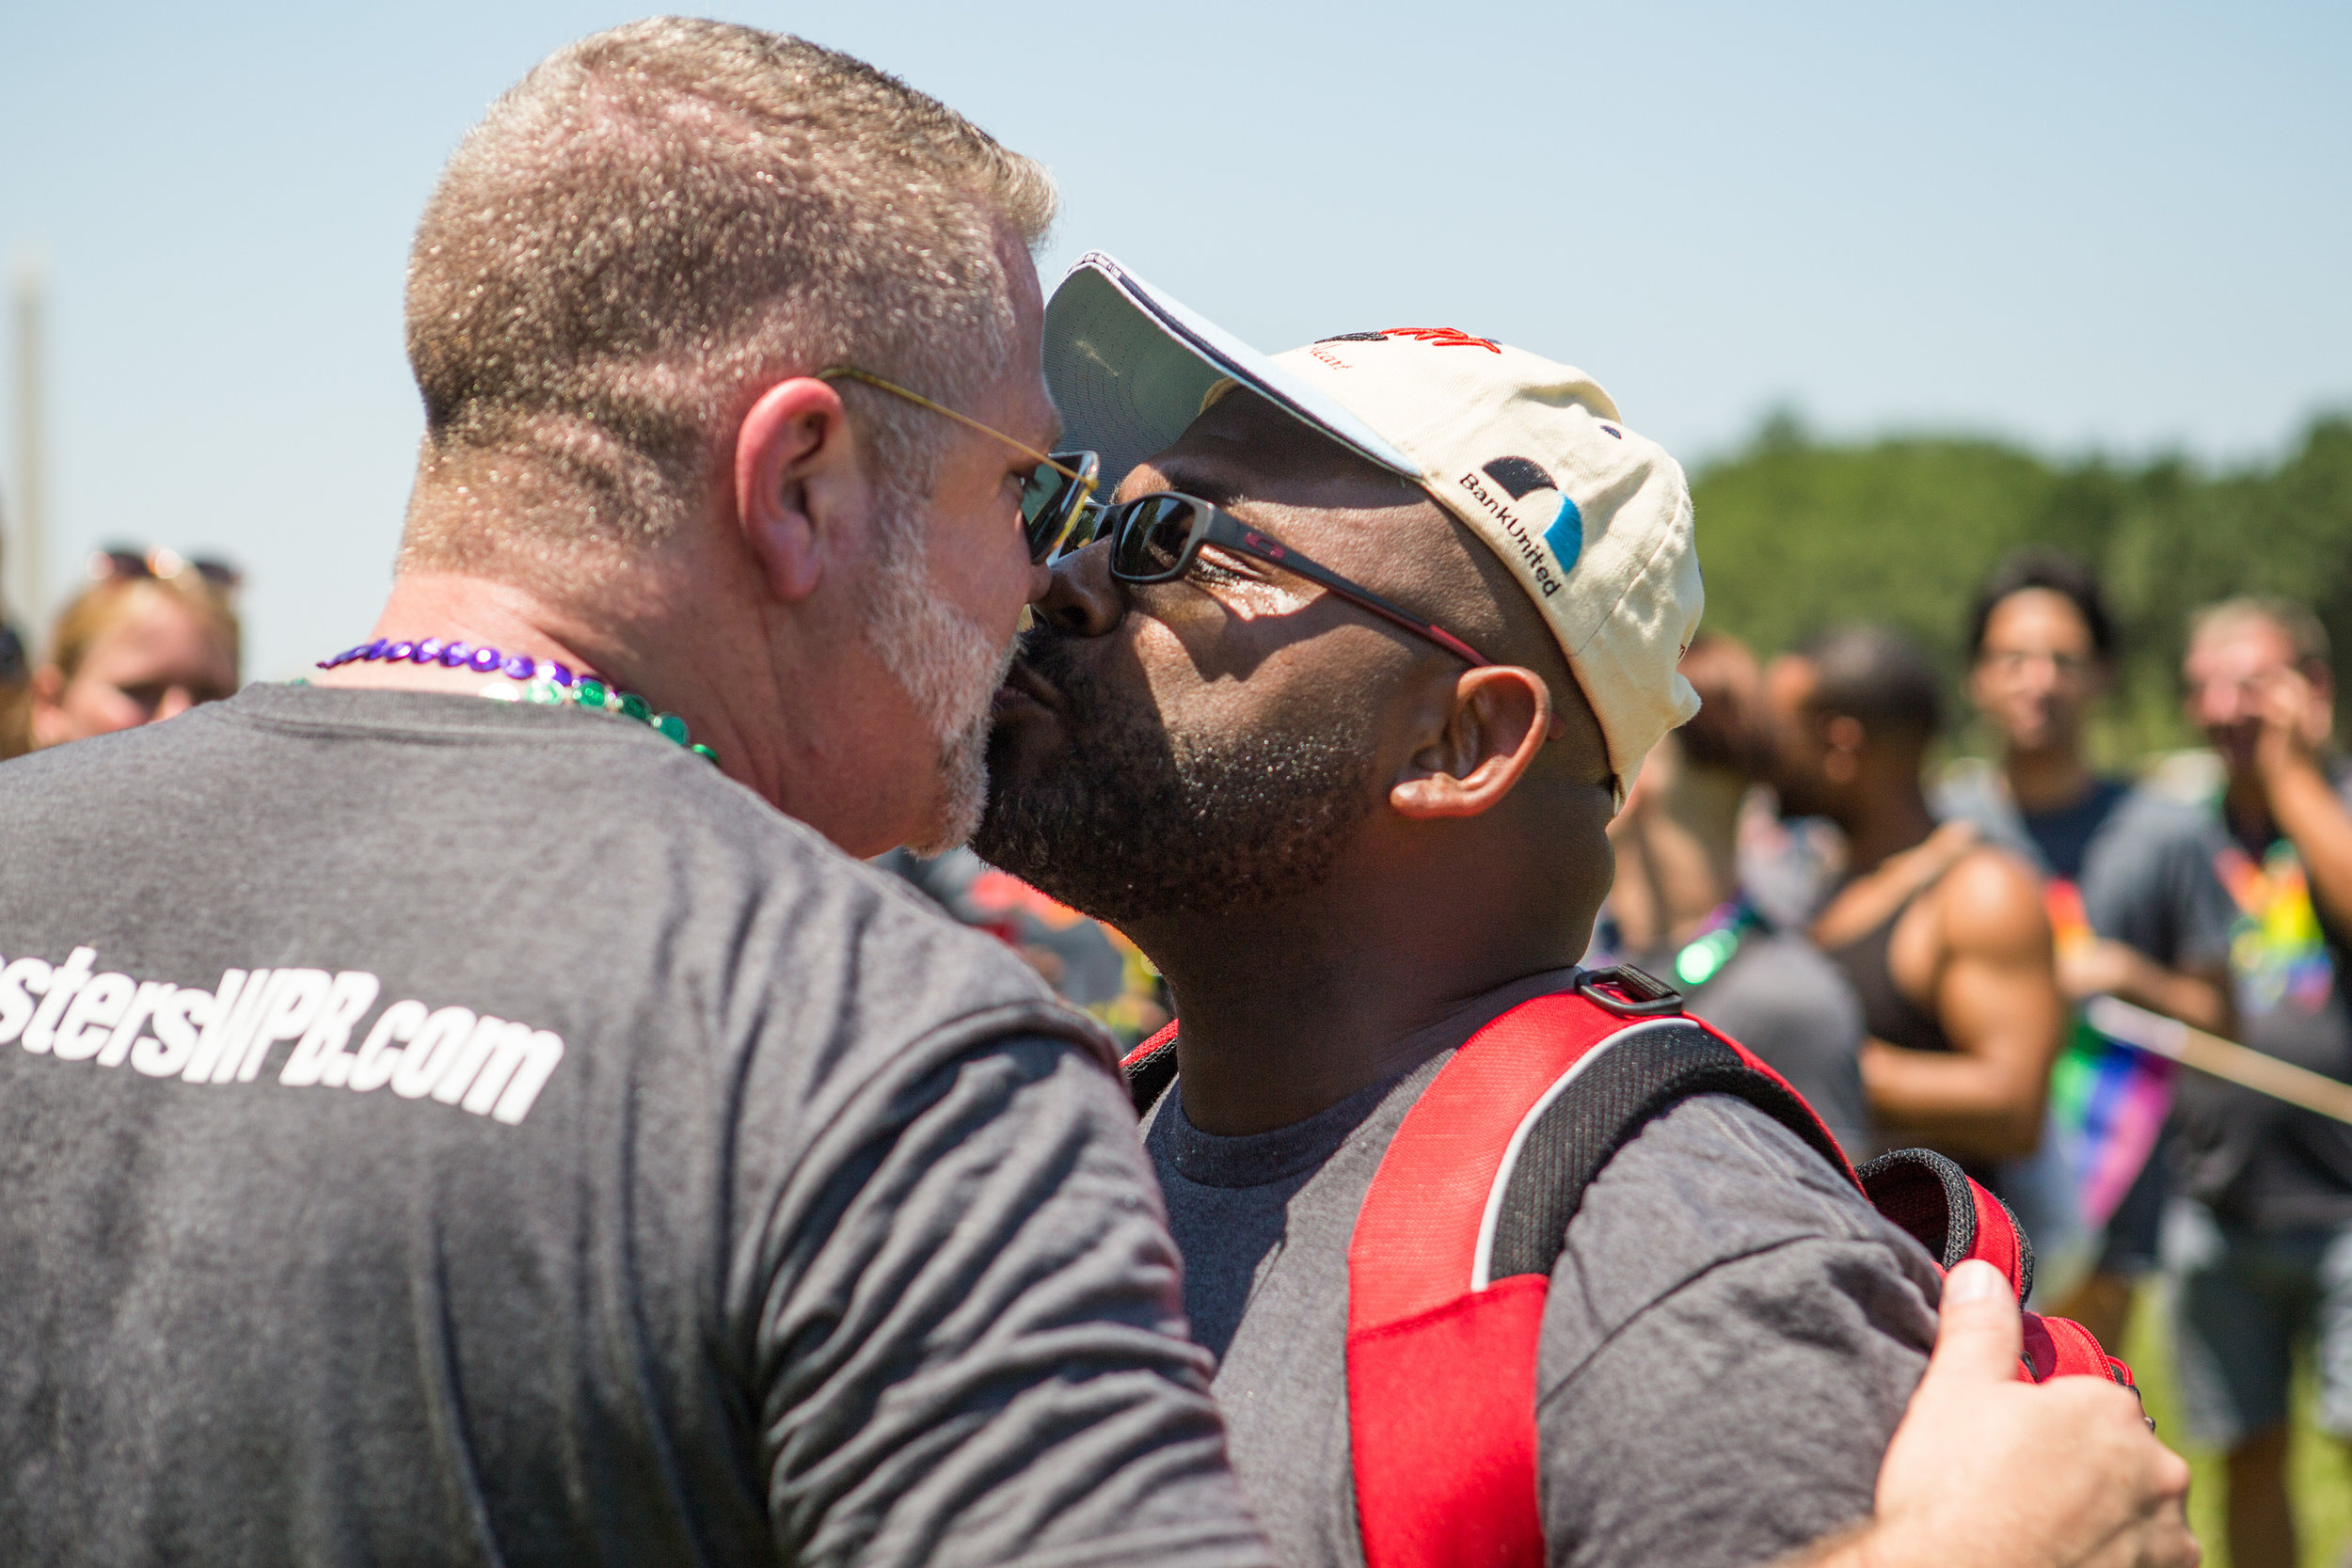 Mike Curtis, left, and Theo Smith of West Palm Beach, FL share a kiss just moments after becoming engaged to get married during the Equality March in Washington D.C. on Sunday, June 11. (Photo: Liam James Doyle/NPR)